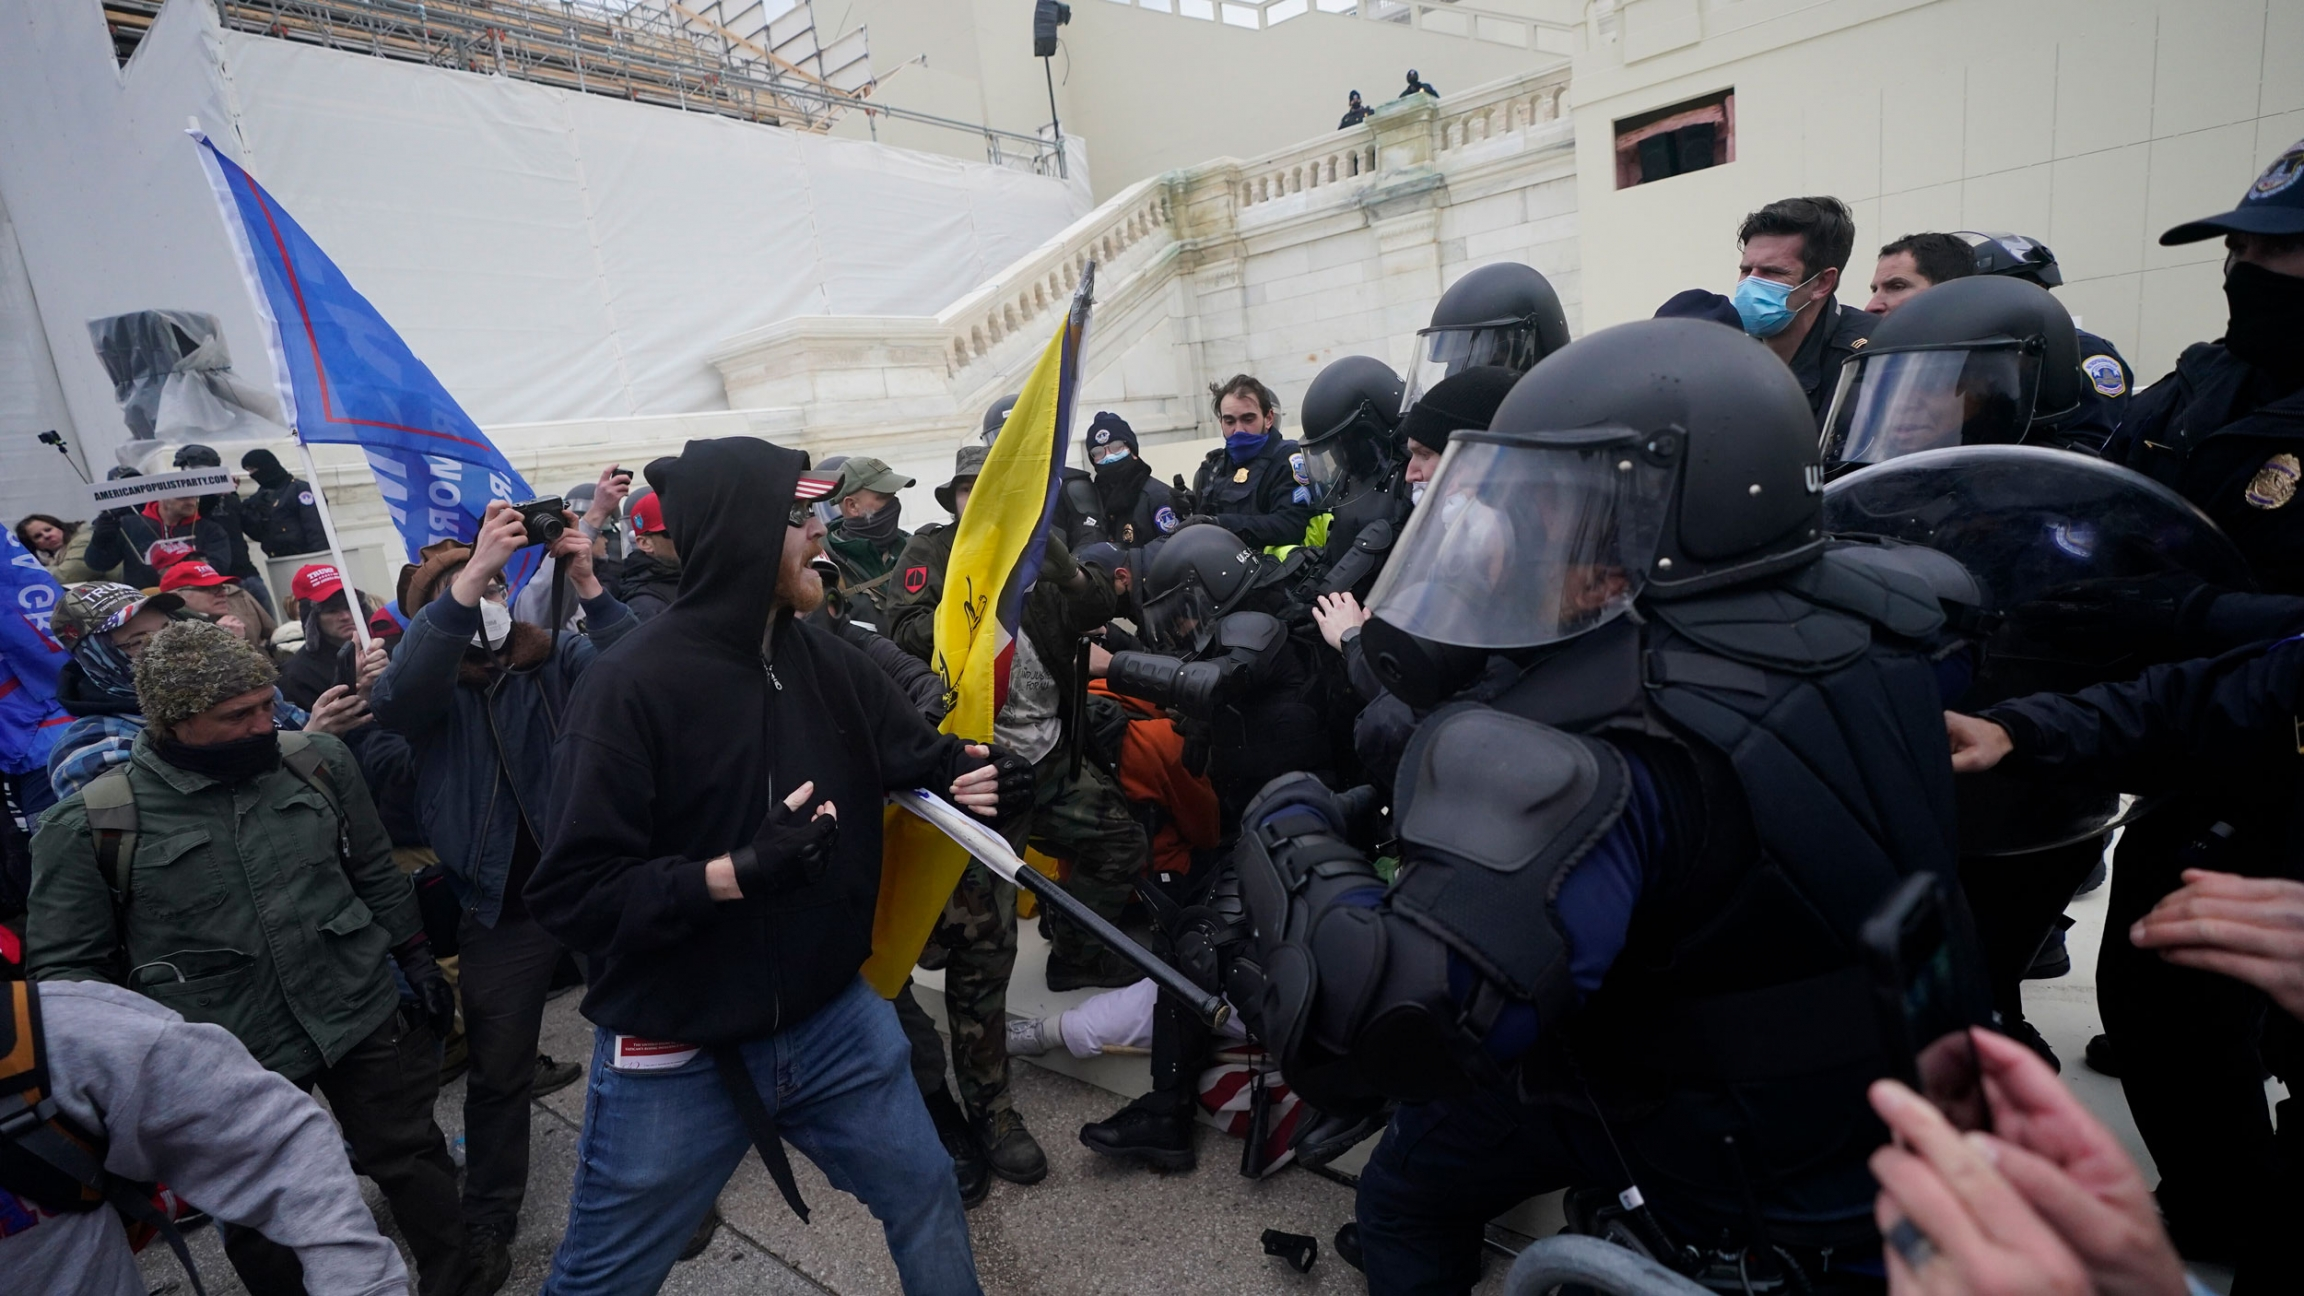 A large crowd of people are shown forcing their way past armed security officers at the US Capitol building.